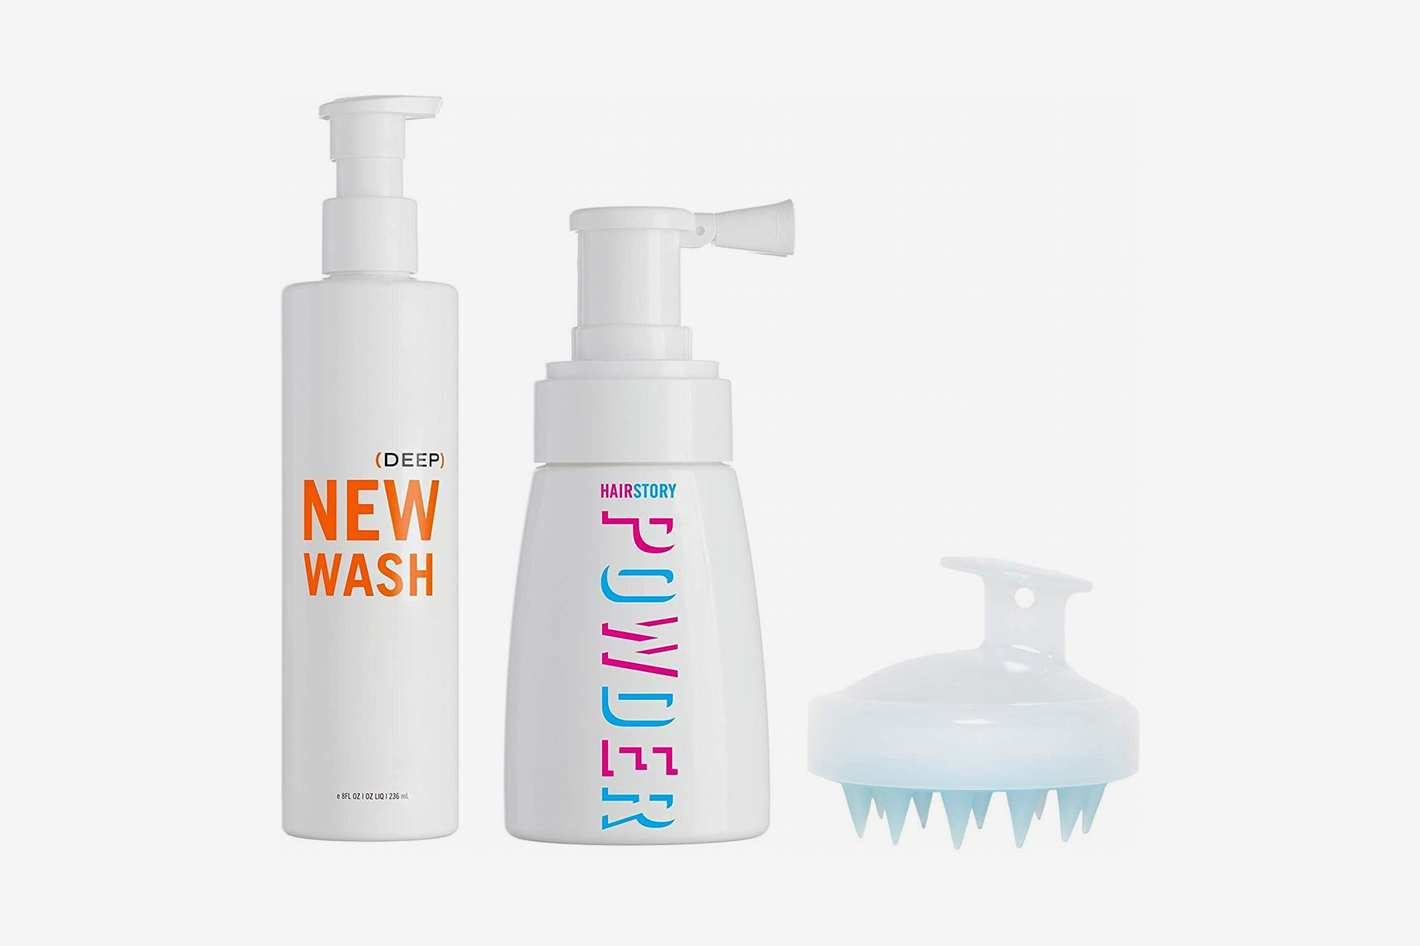 Hairstory New Wash Deep Kit - Hair Cleanser 8 oz + Hair Powder 1.35 oz + In-Shower Brush for Cleansing and Conditioning